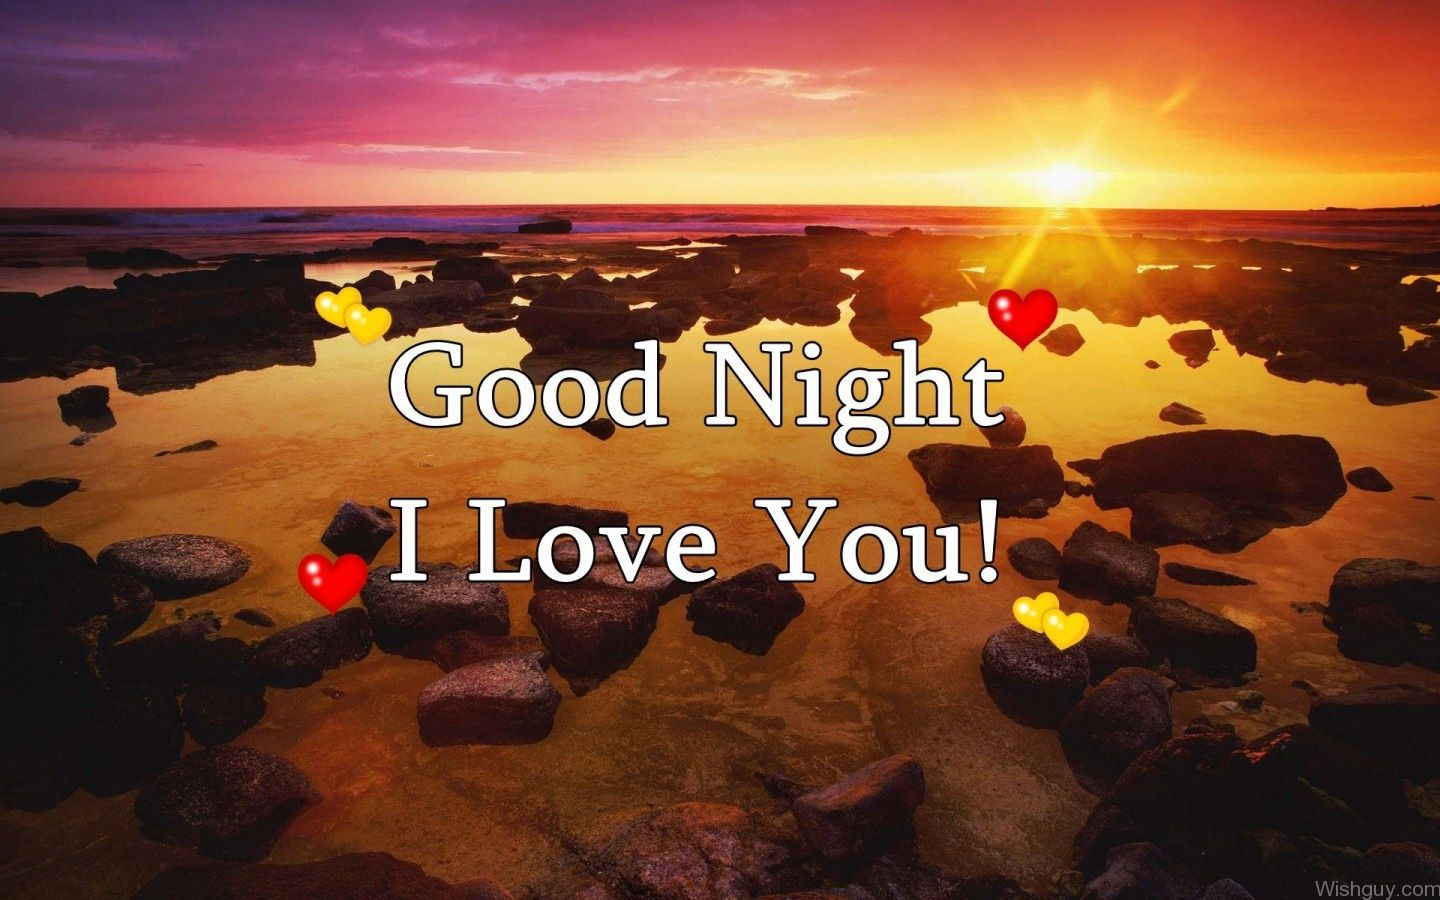 Good Night I Love You Wishes Greetings Pictures Wish Guy